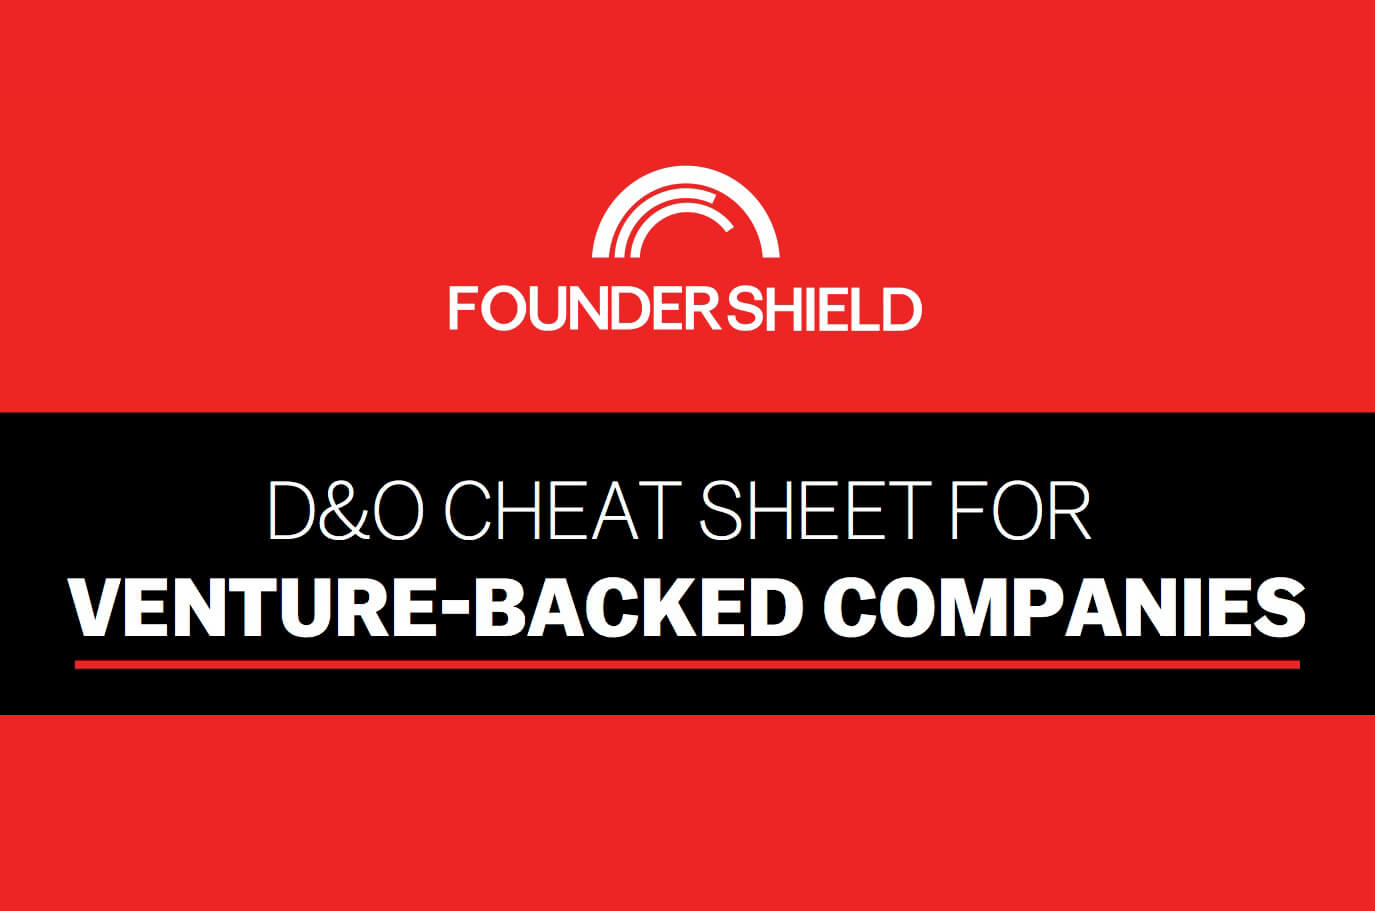 D&O cheat sheet for venture backed companies